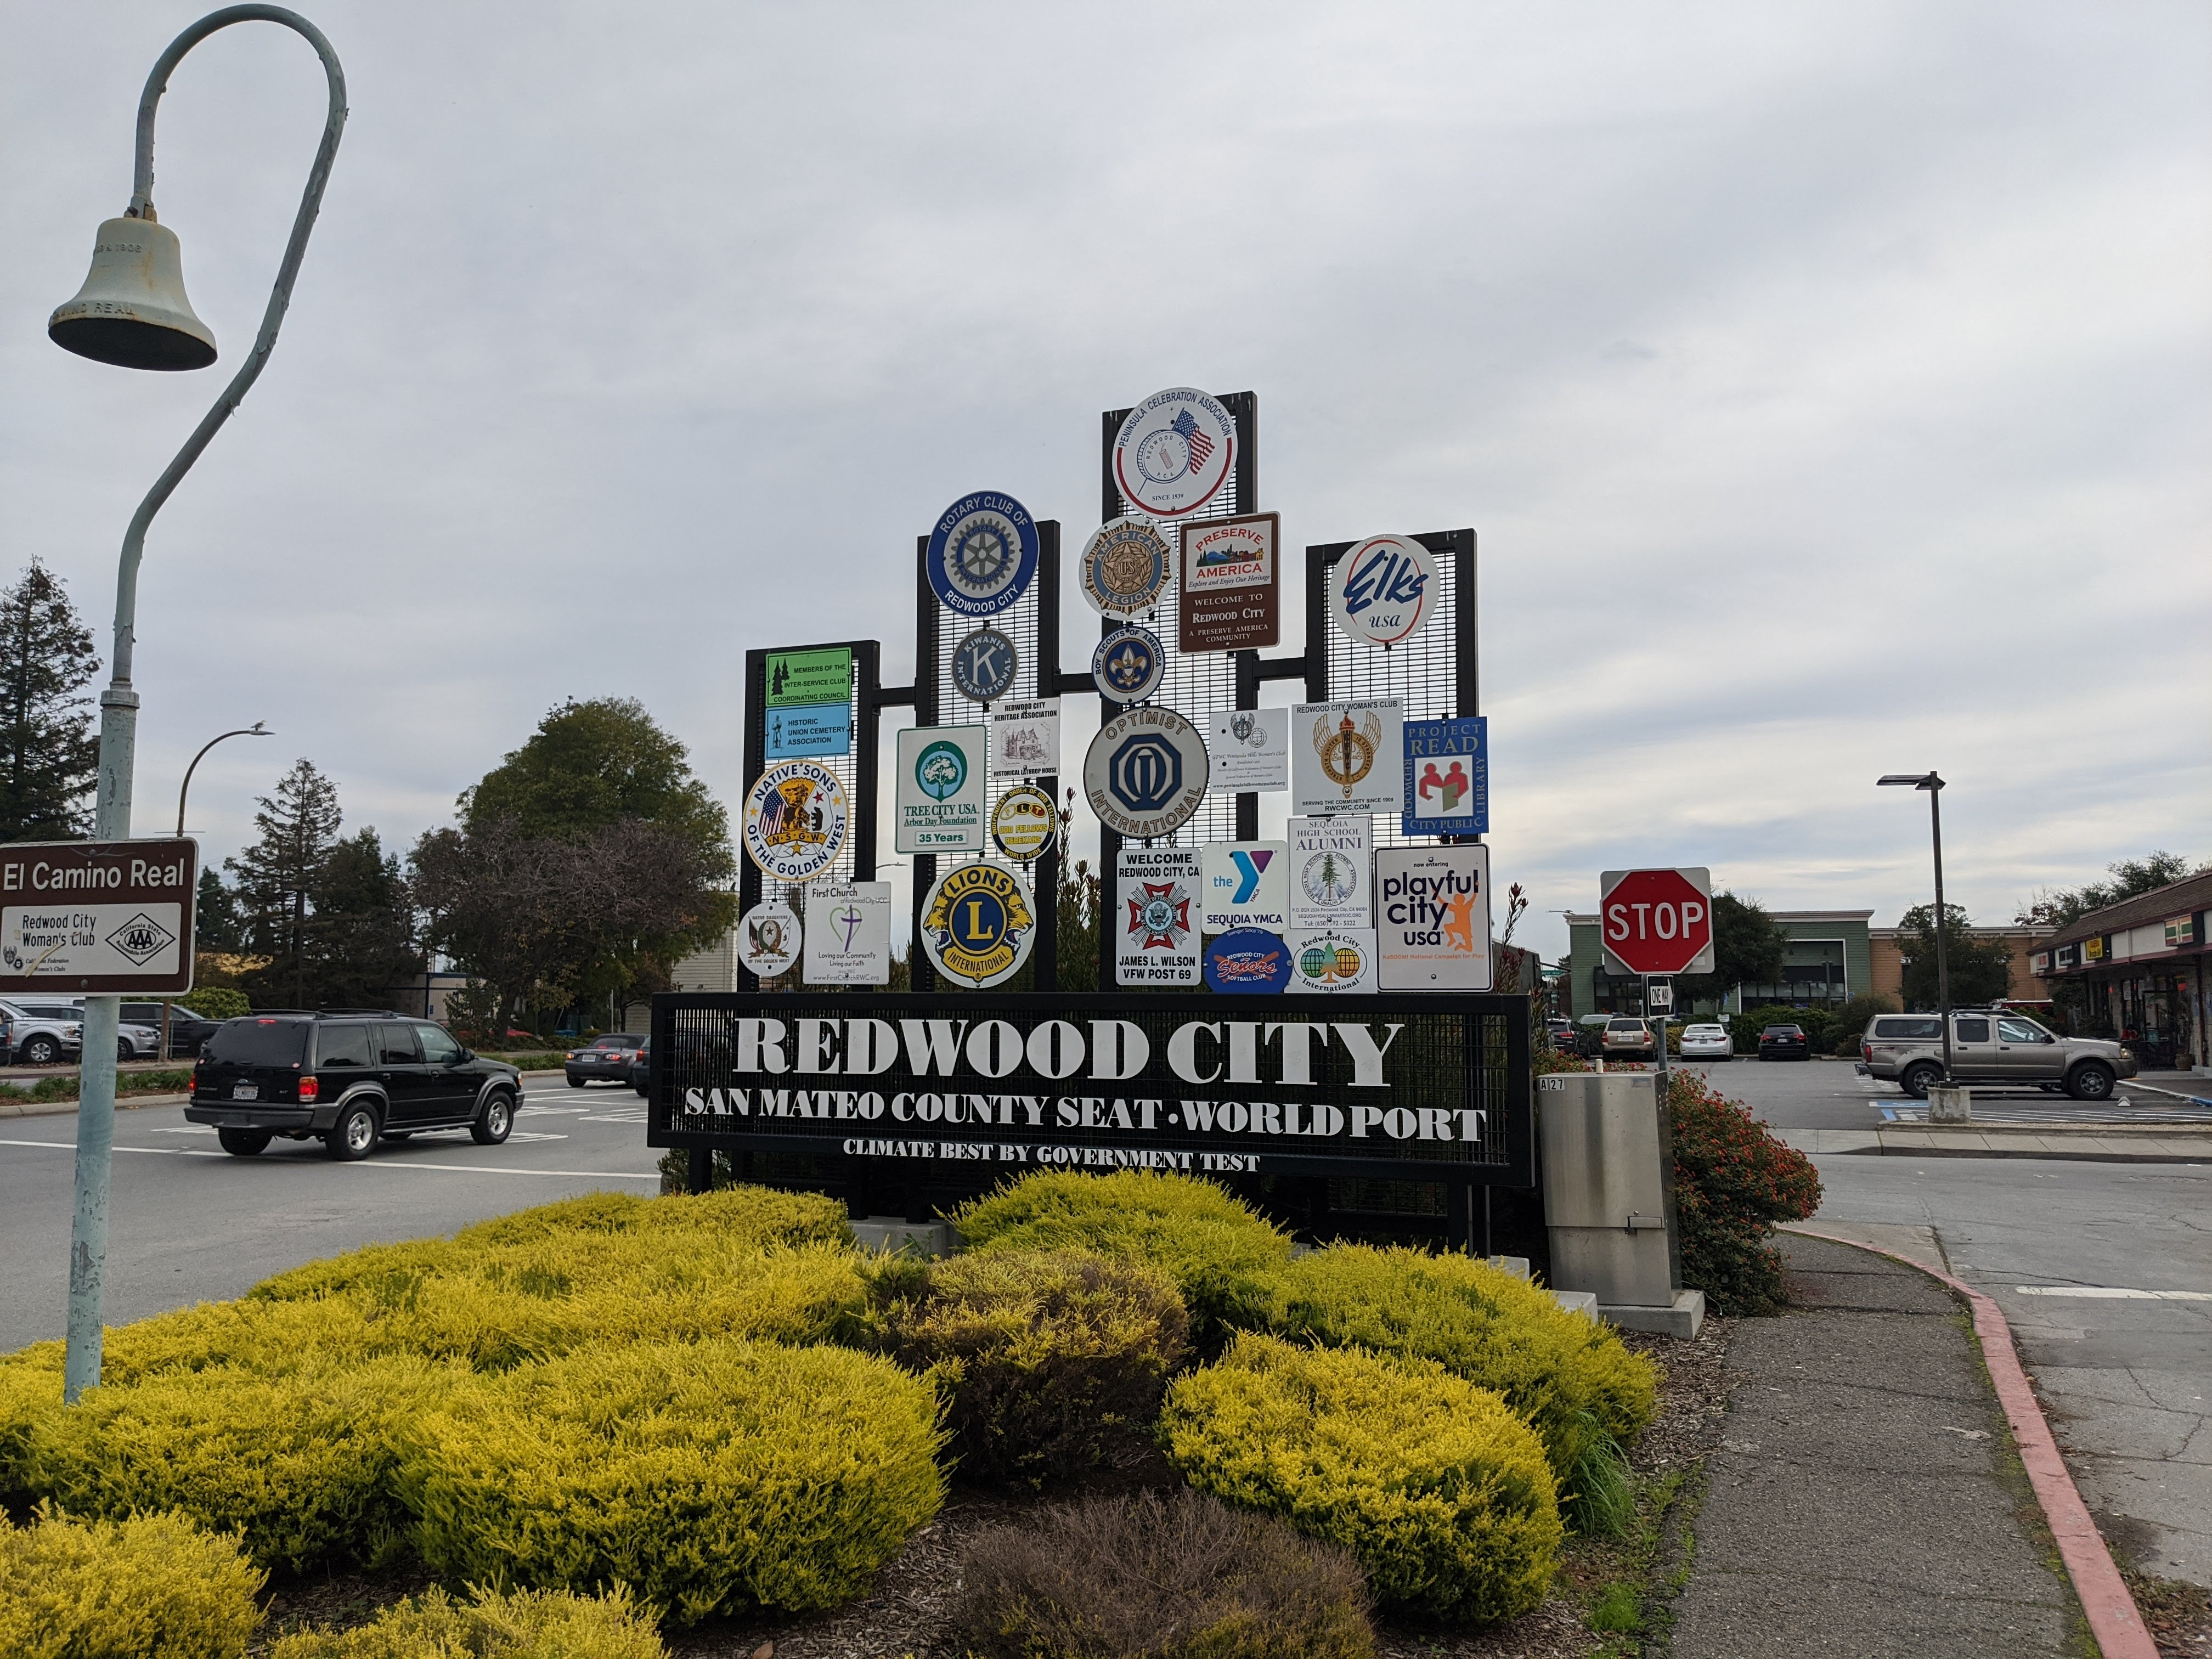 redwood city sign best weather by government test